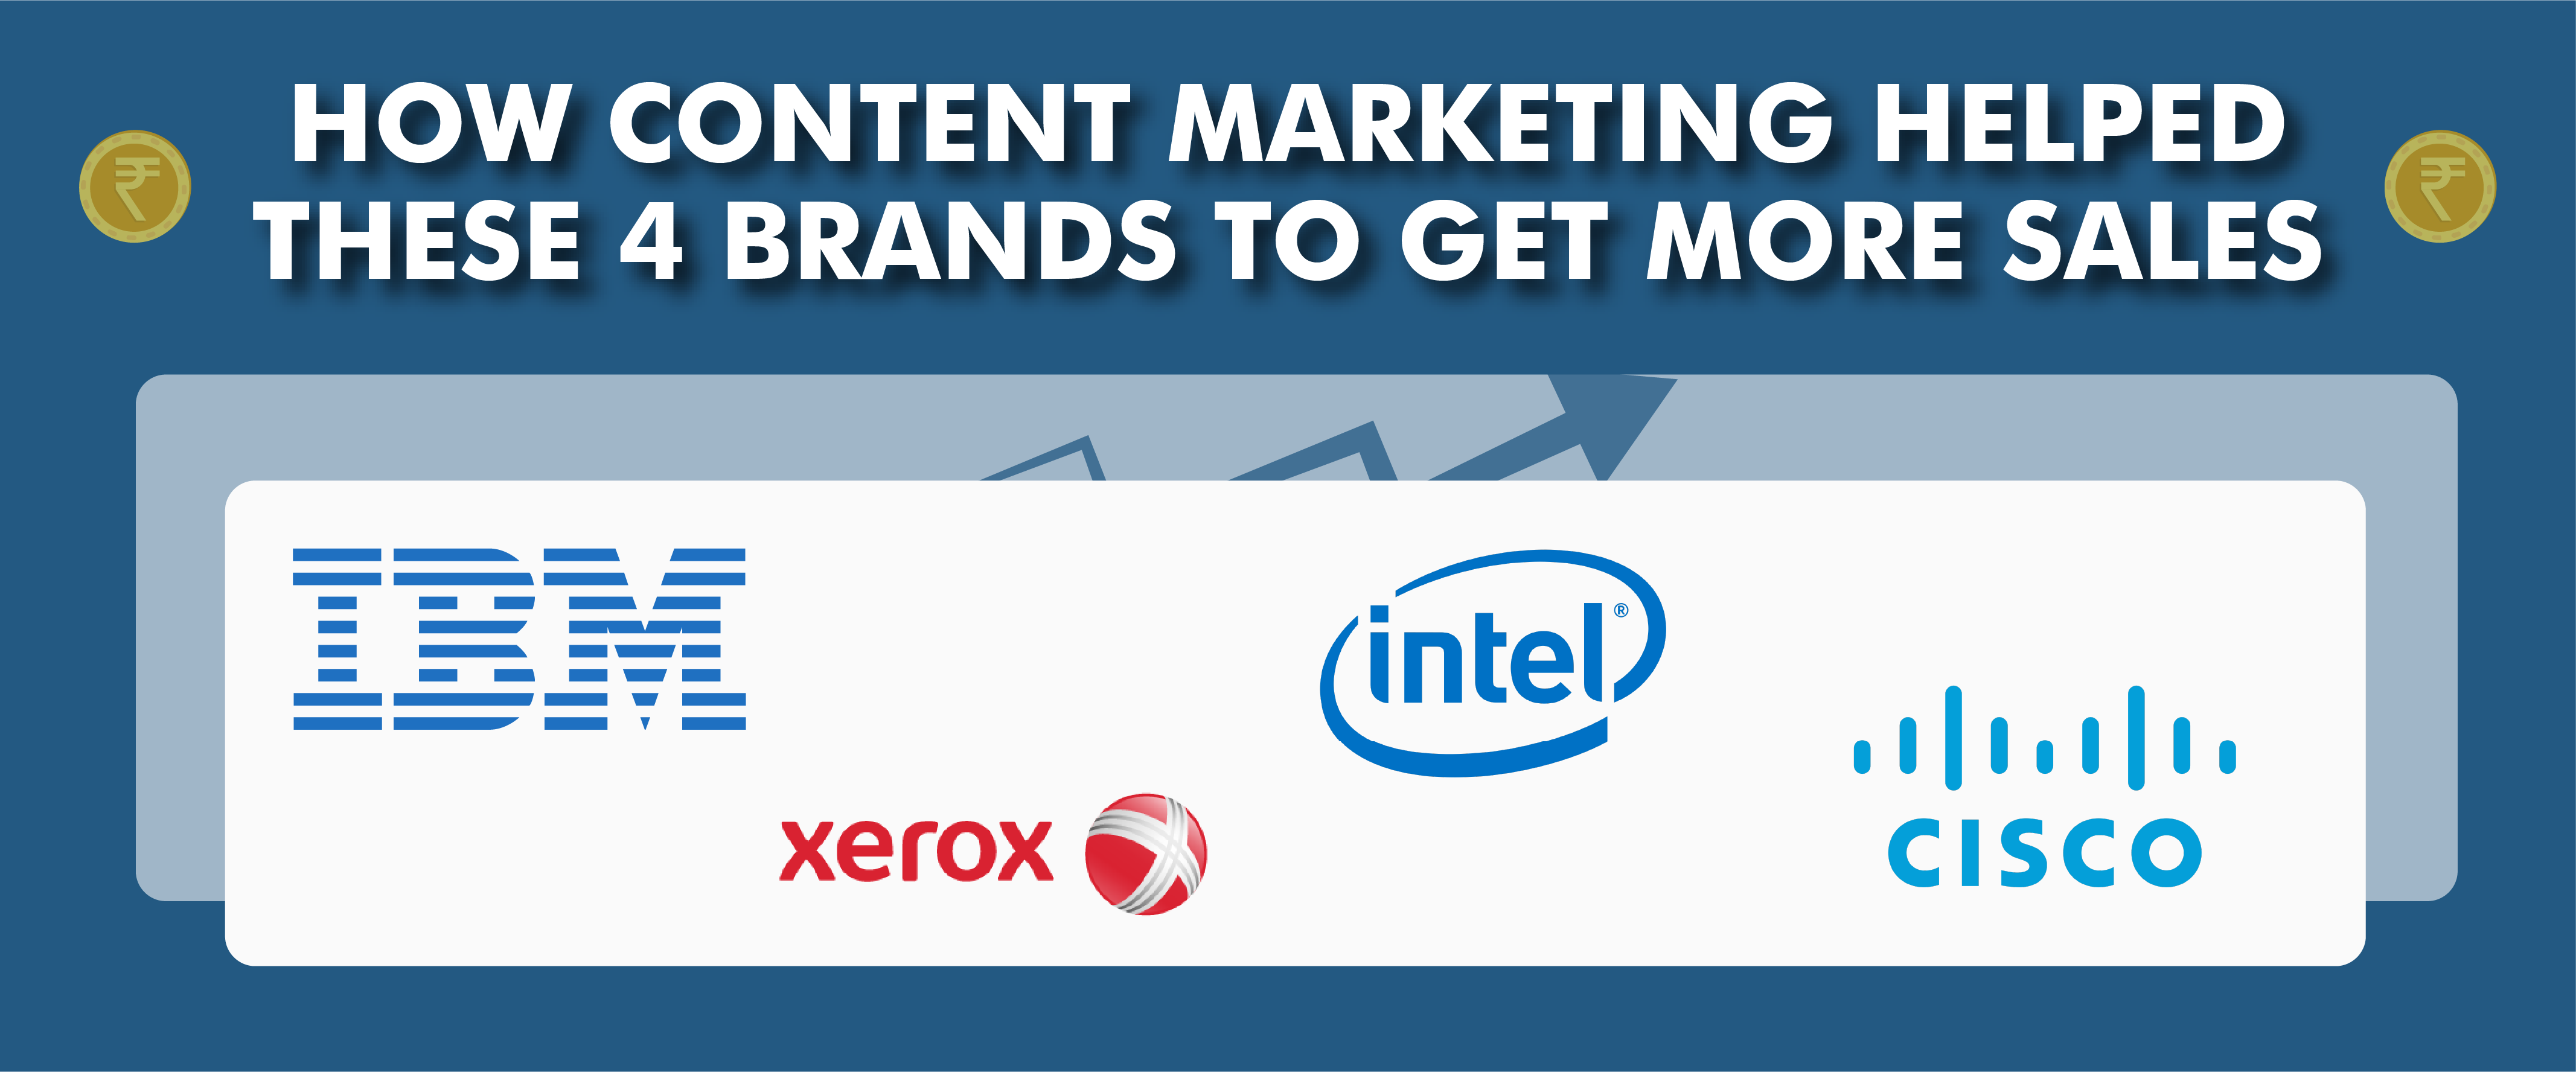 How Content Marketing Helped These 4 Brands to Get More Sales